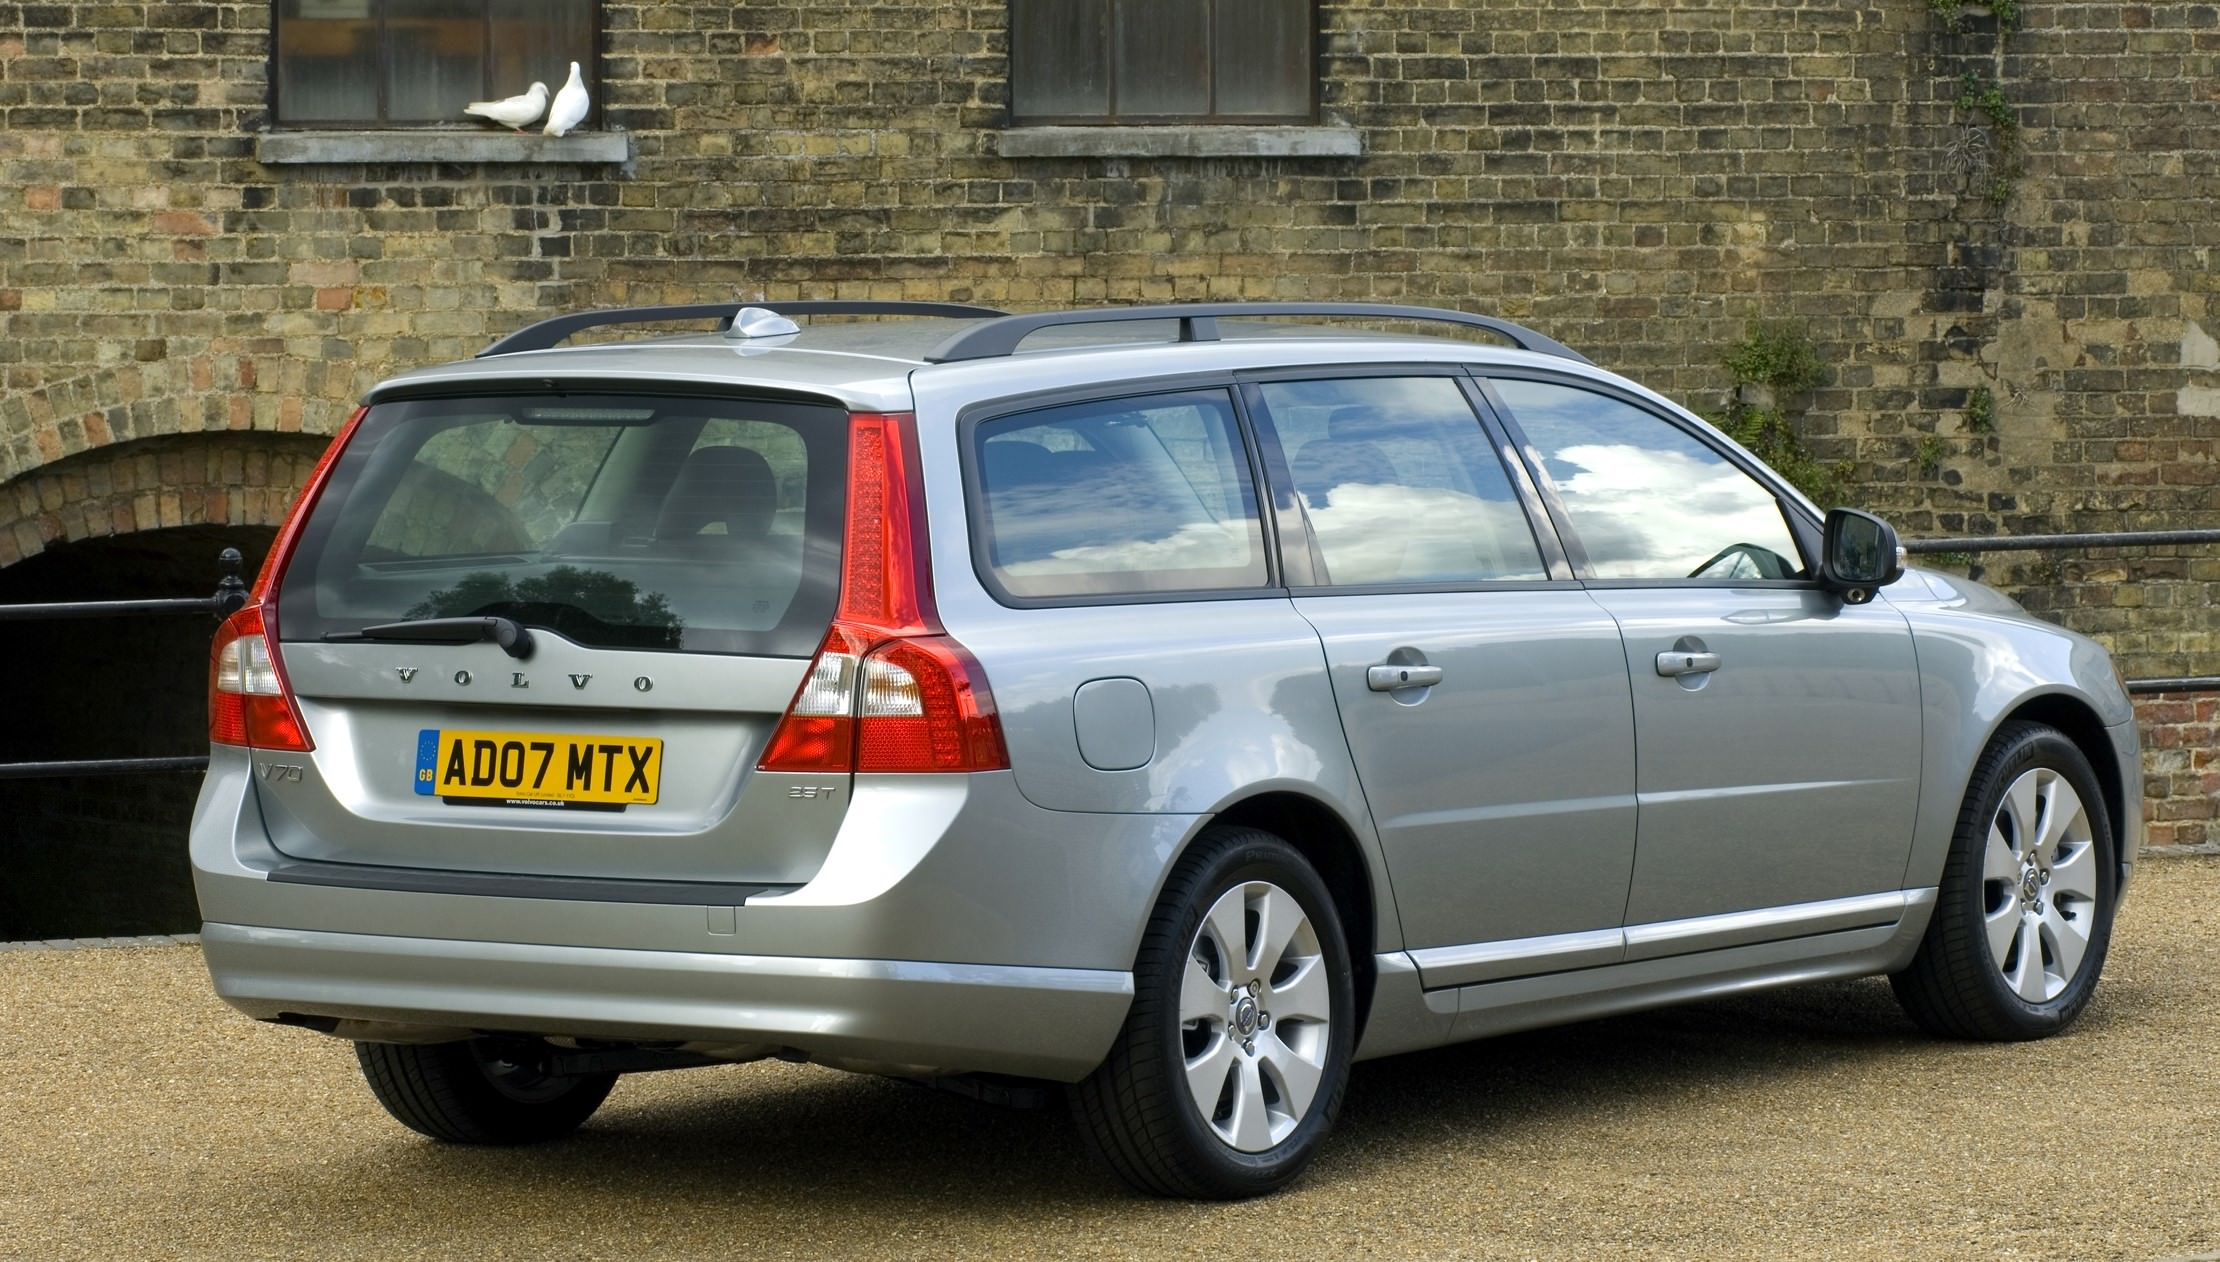 image of a silver volvo v70 estate car exterior